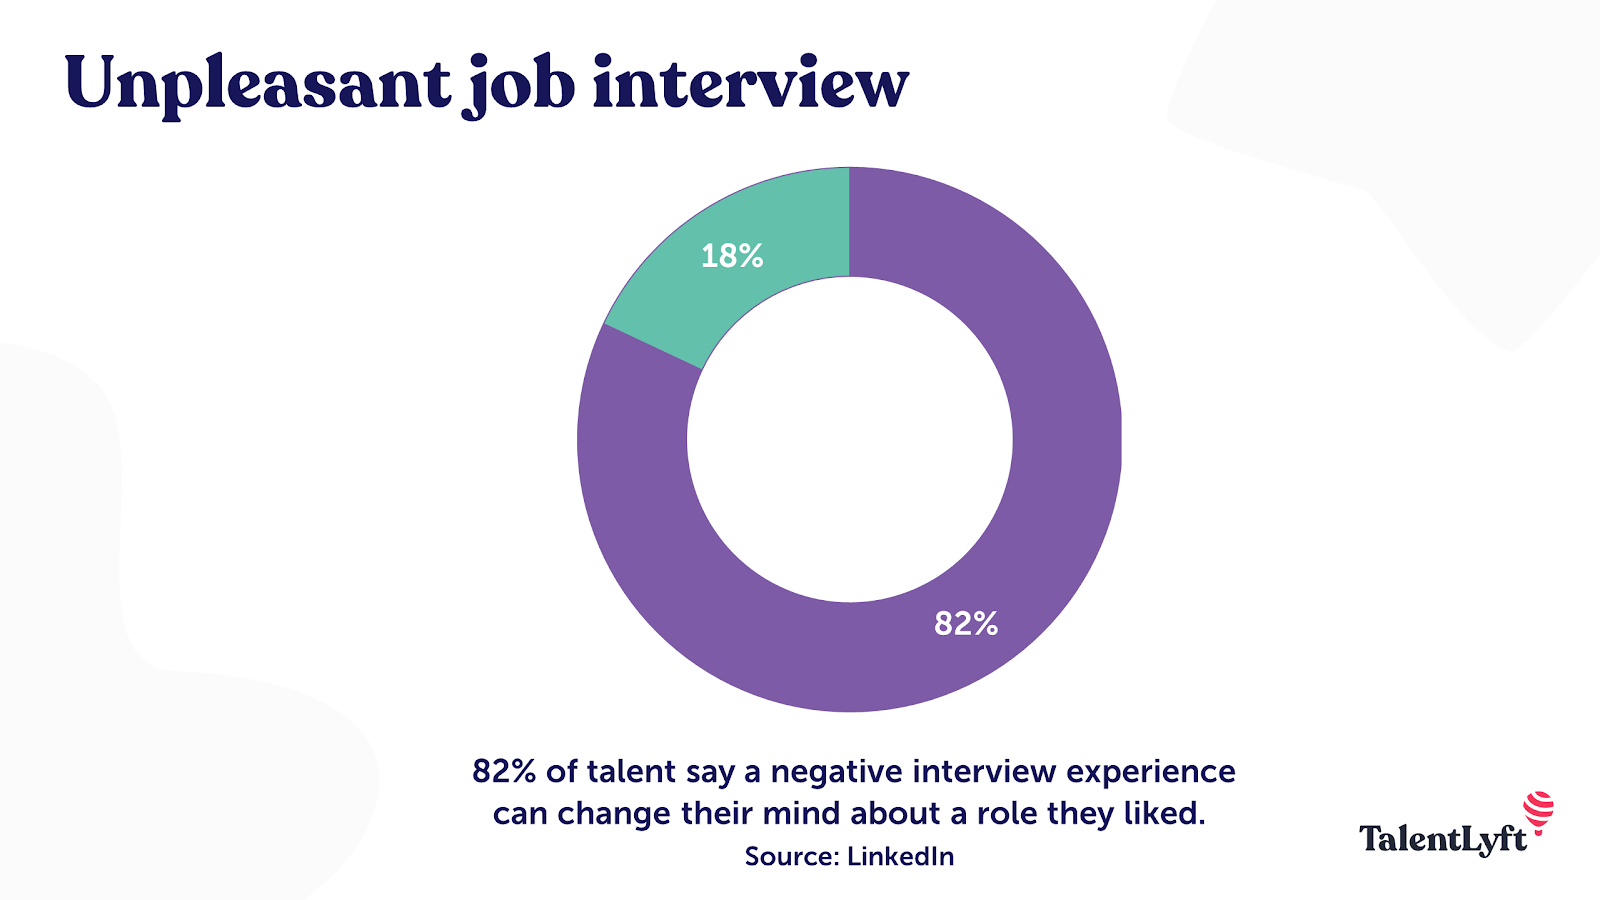 Negative interview experience